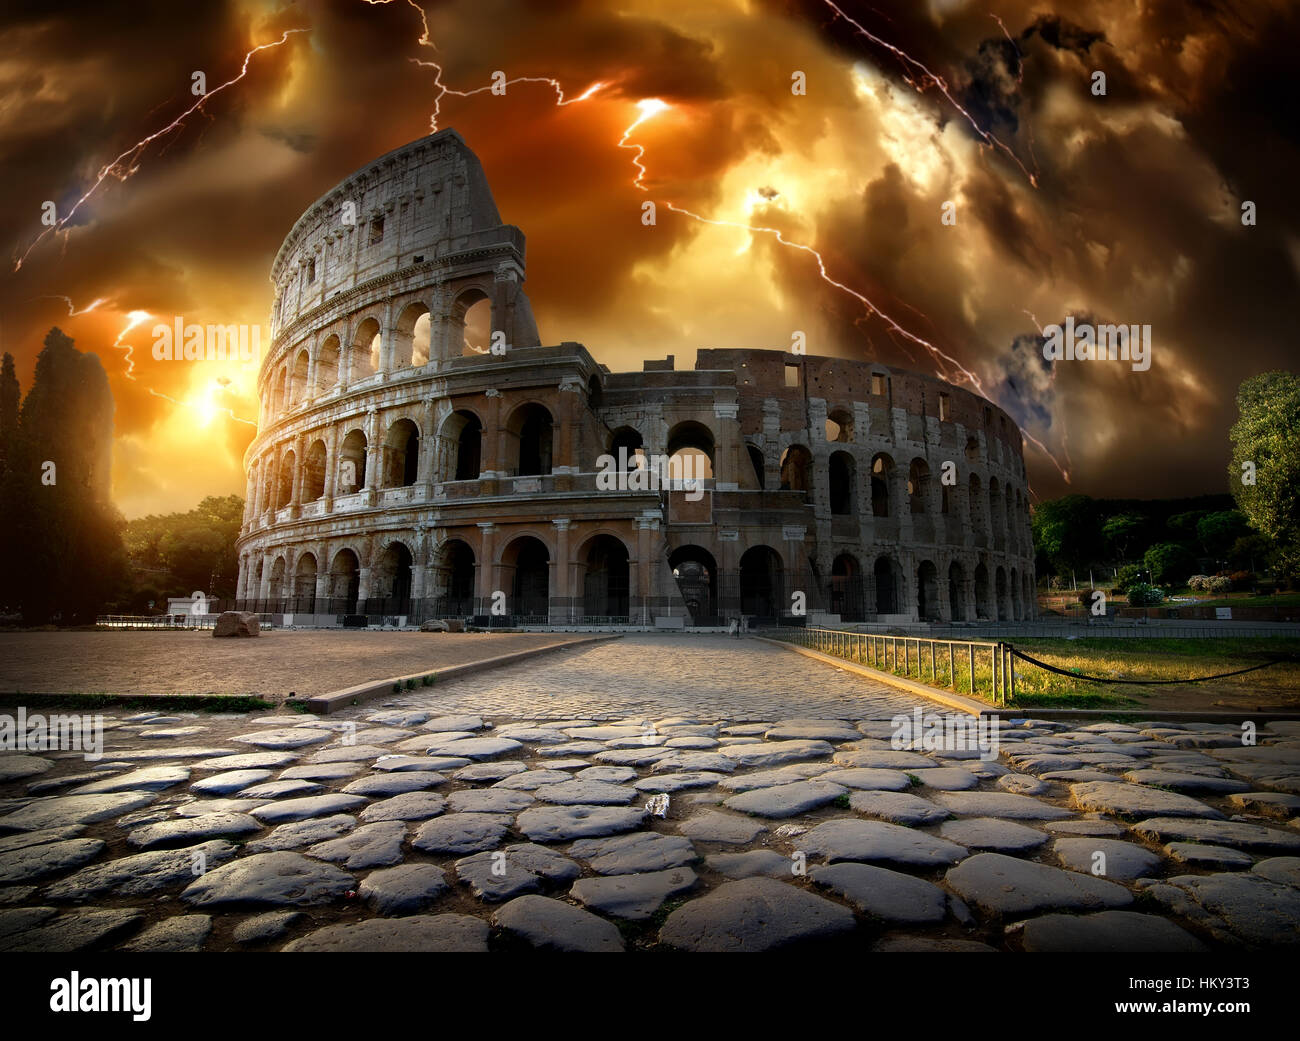 Thunderstorm with lightning over Colosseum in Rome, Italy - Stock Image